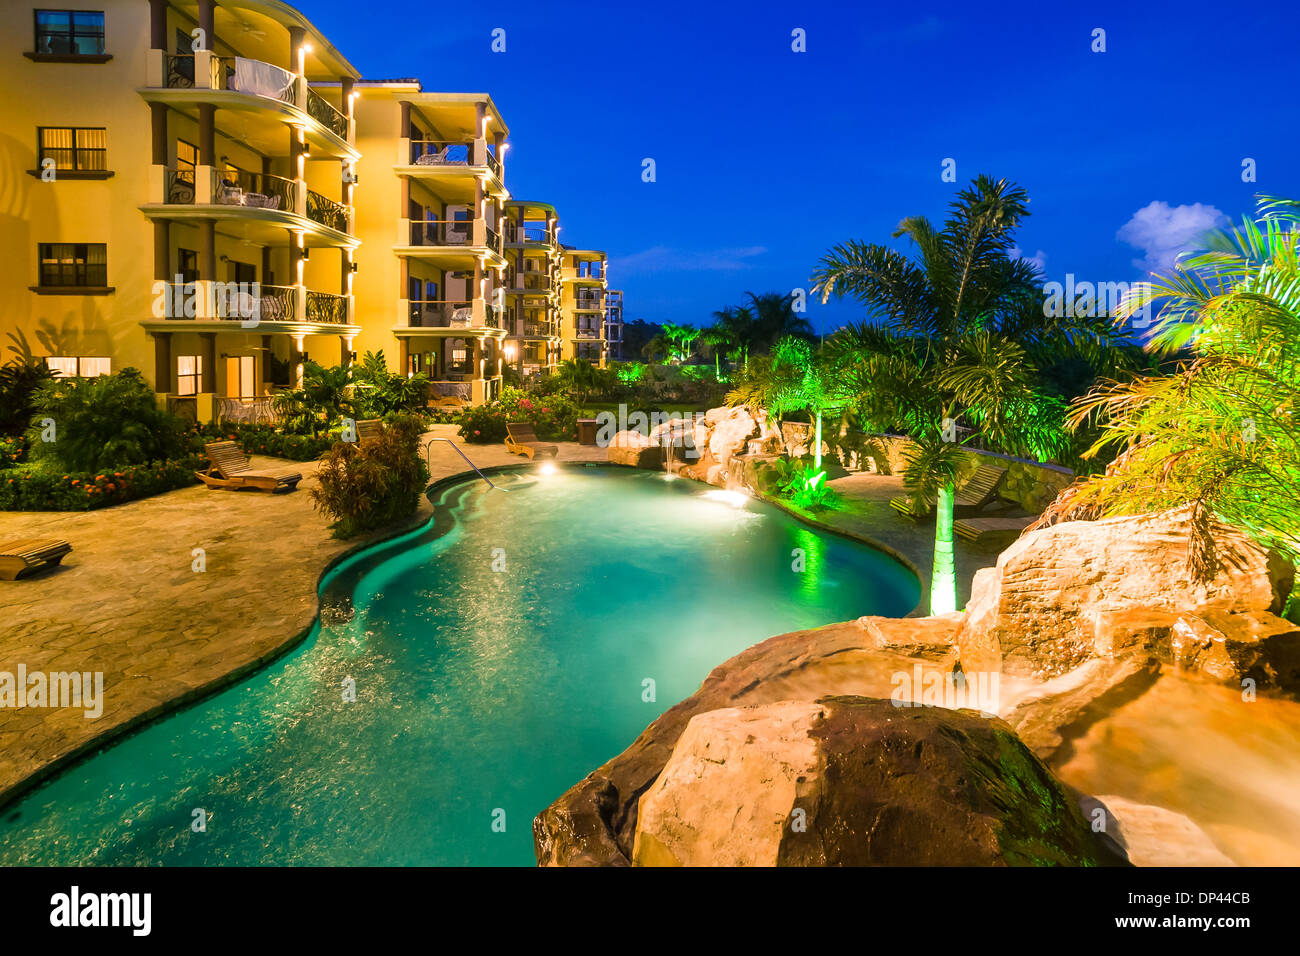 Architectural photo of hotel condo units and swimming pool dusk - Stock Image